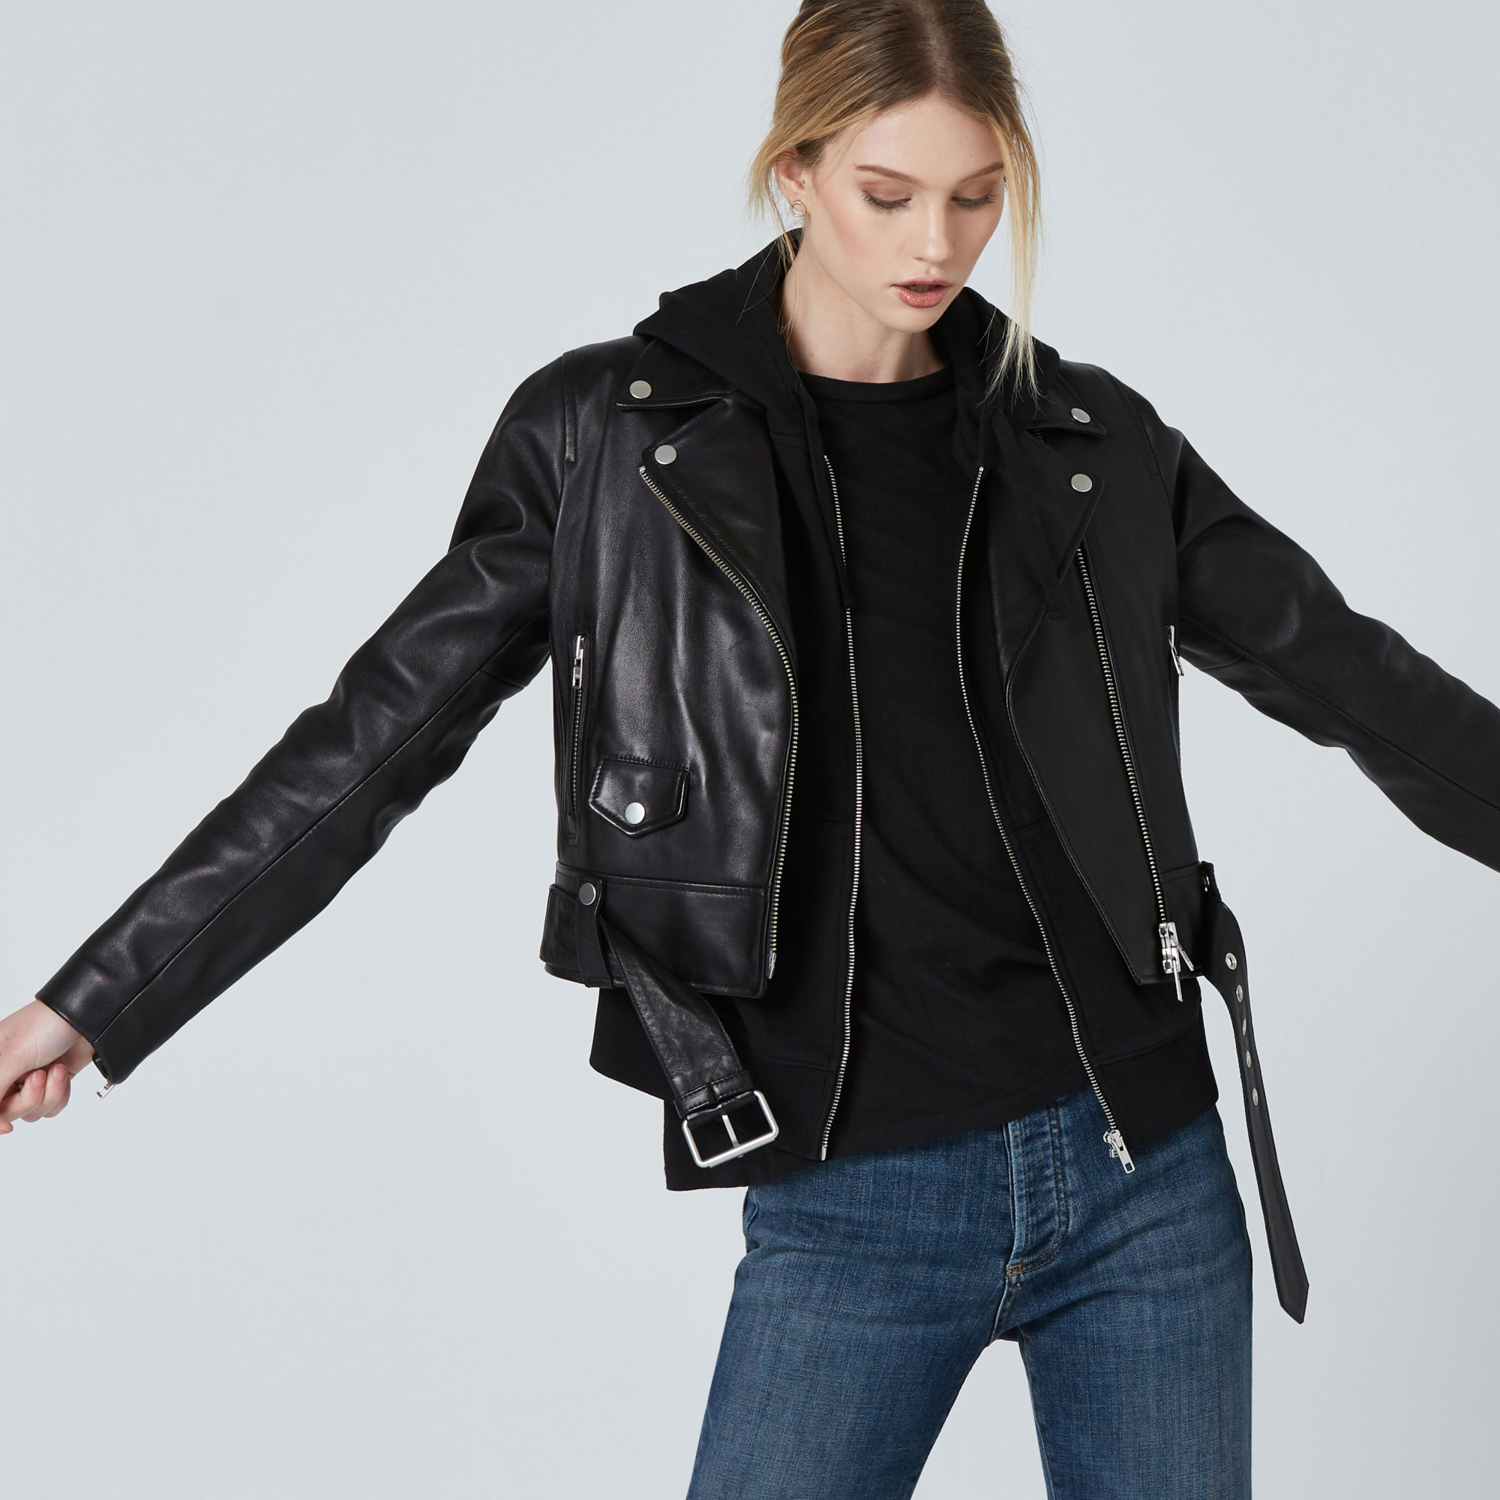 The perfect woman black leather jacket ! The leather biker jacket is a French staple: timeless and effortless chic! Selection of the best premium leather jacket at an affordable price - dstld 20% off coupon code womens-leather-biker-jacket-in-black-product